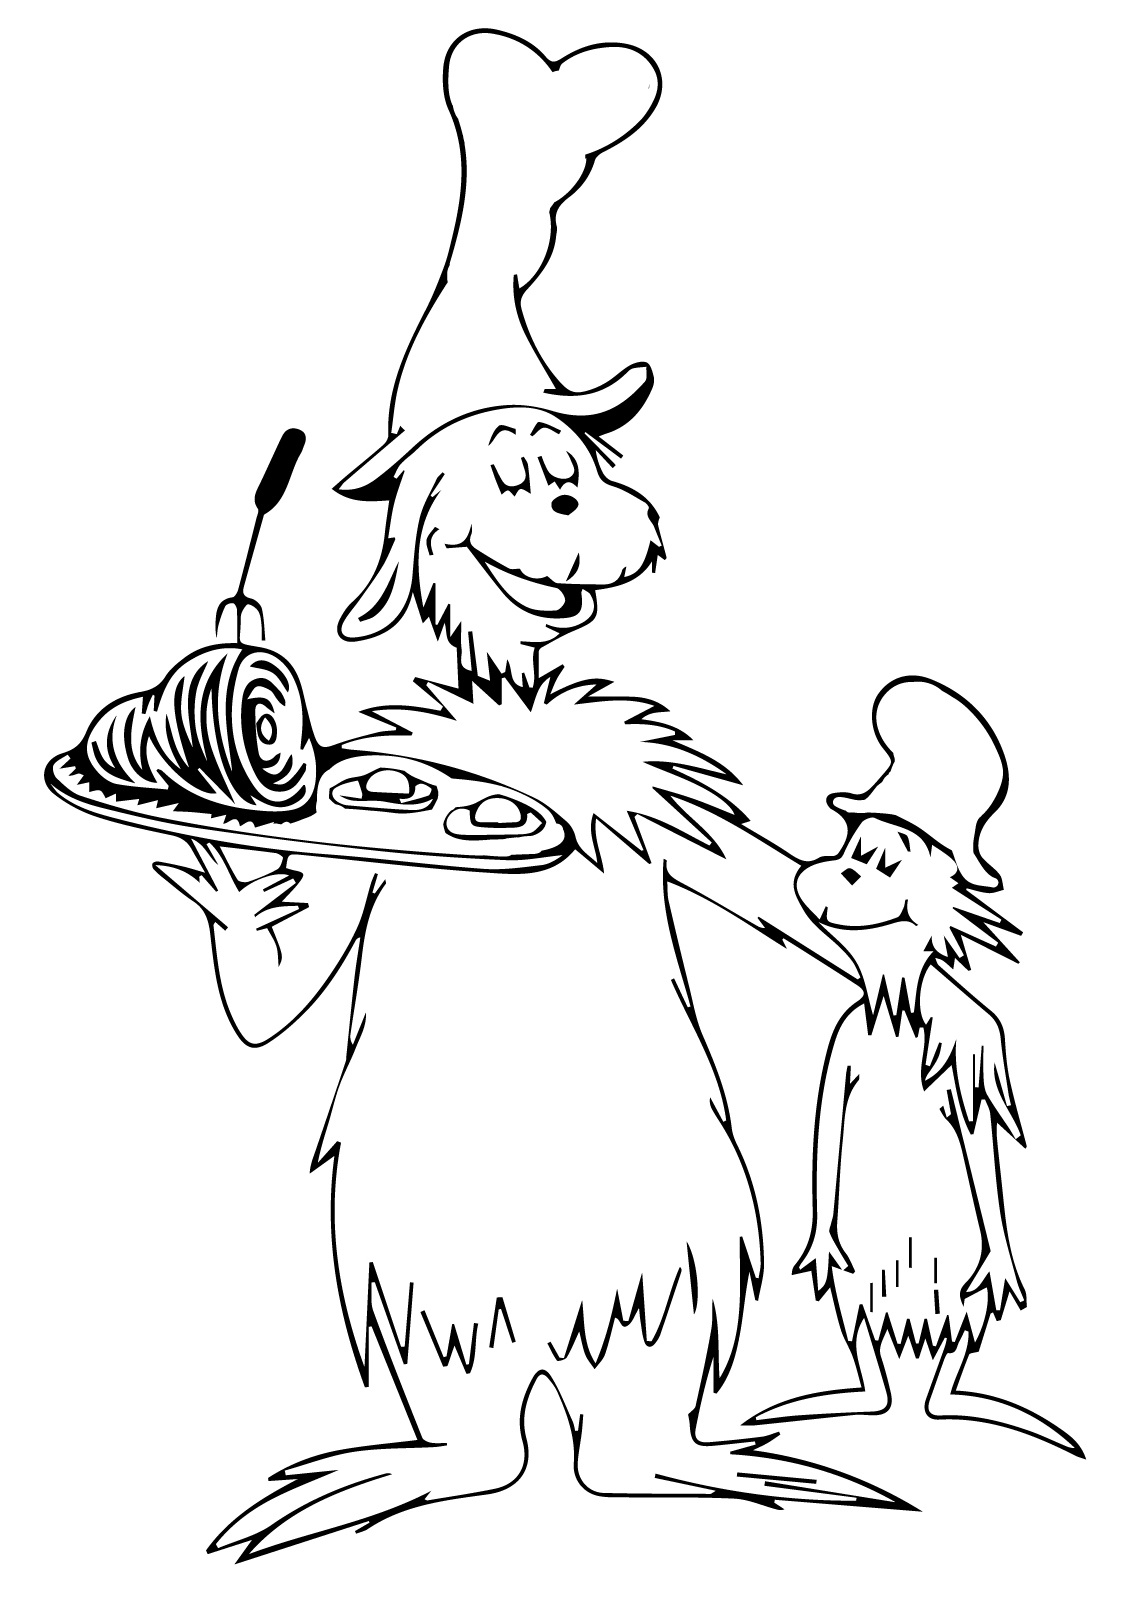 green eggs and ham coloring page green eggs and ham coloring pages at getcoloringscom green ham eggs and coloring page